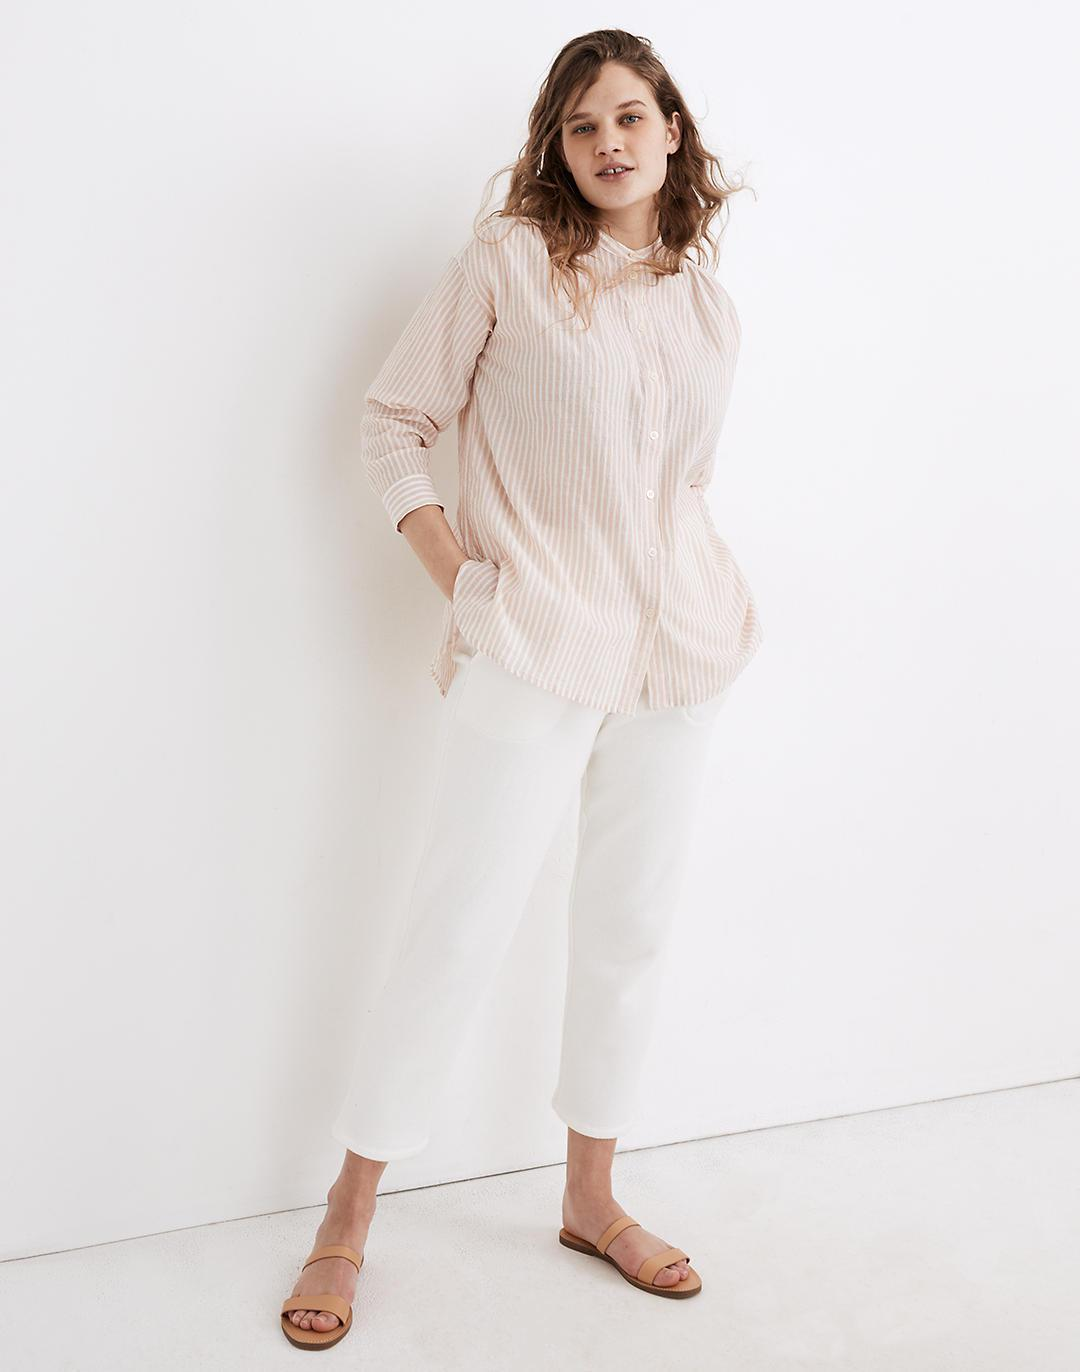 Banded Collar Tunic Top in Stripe